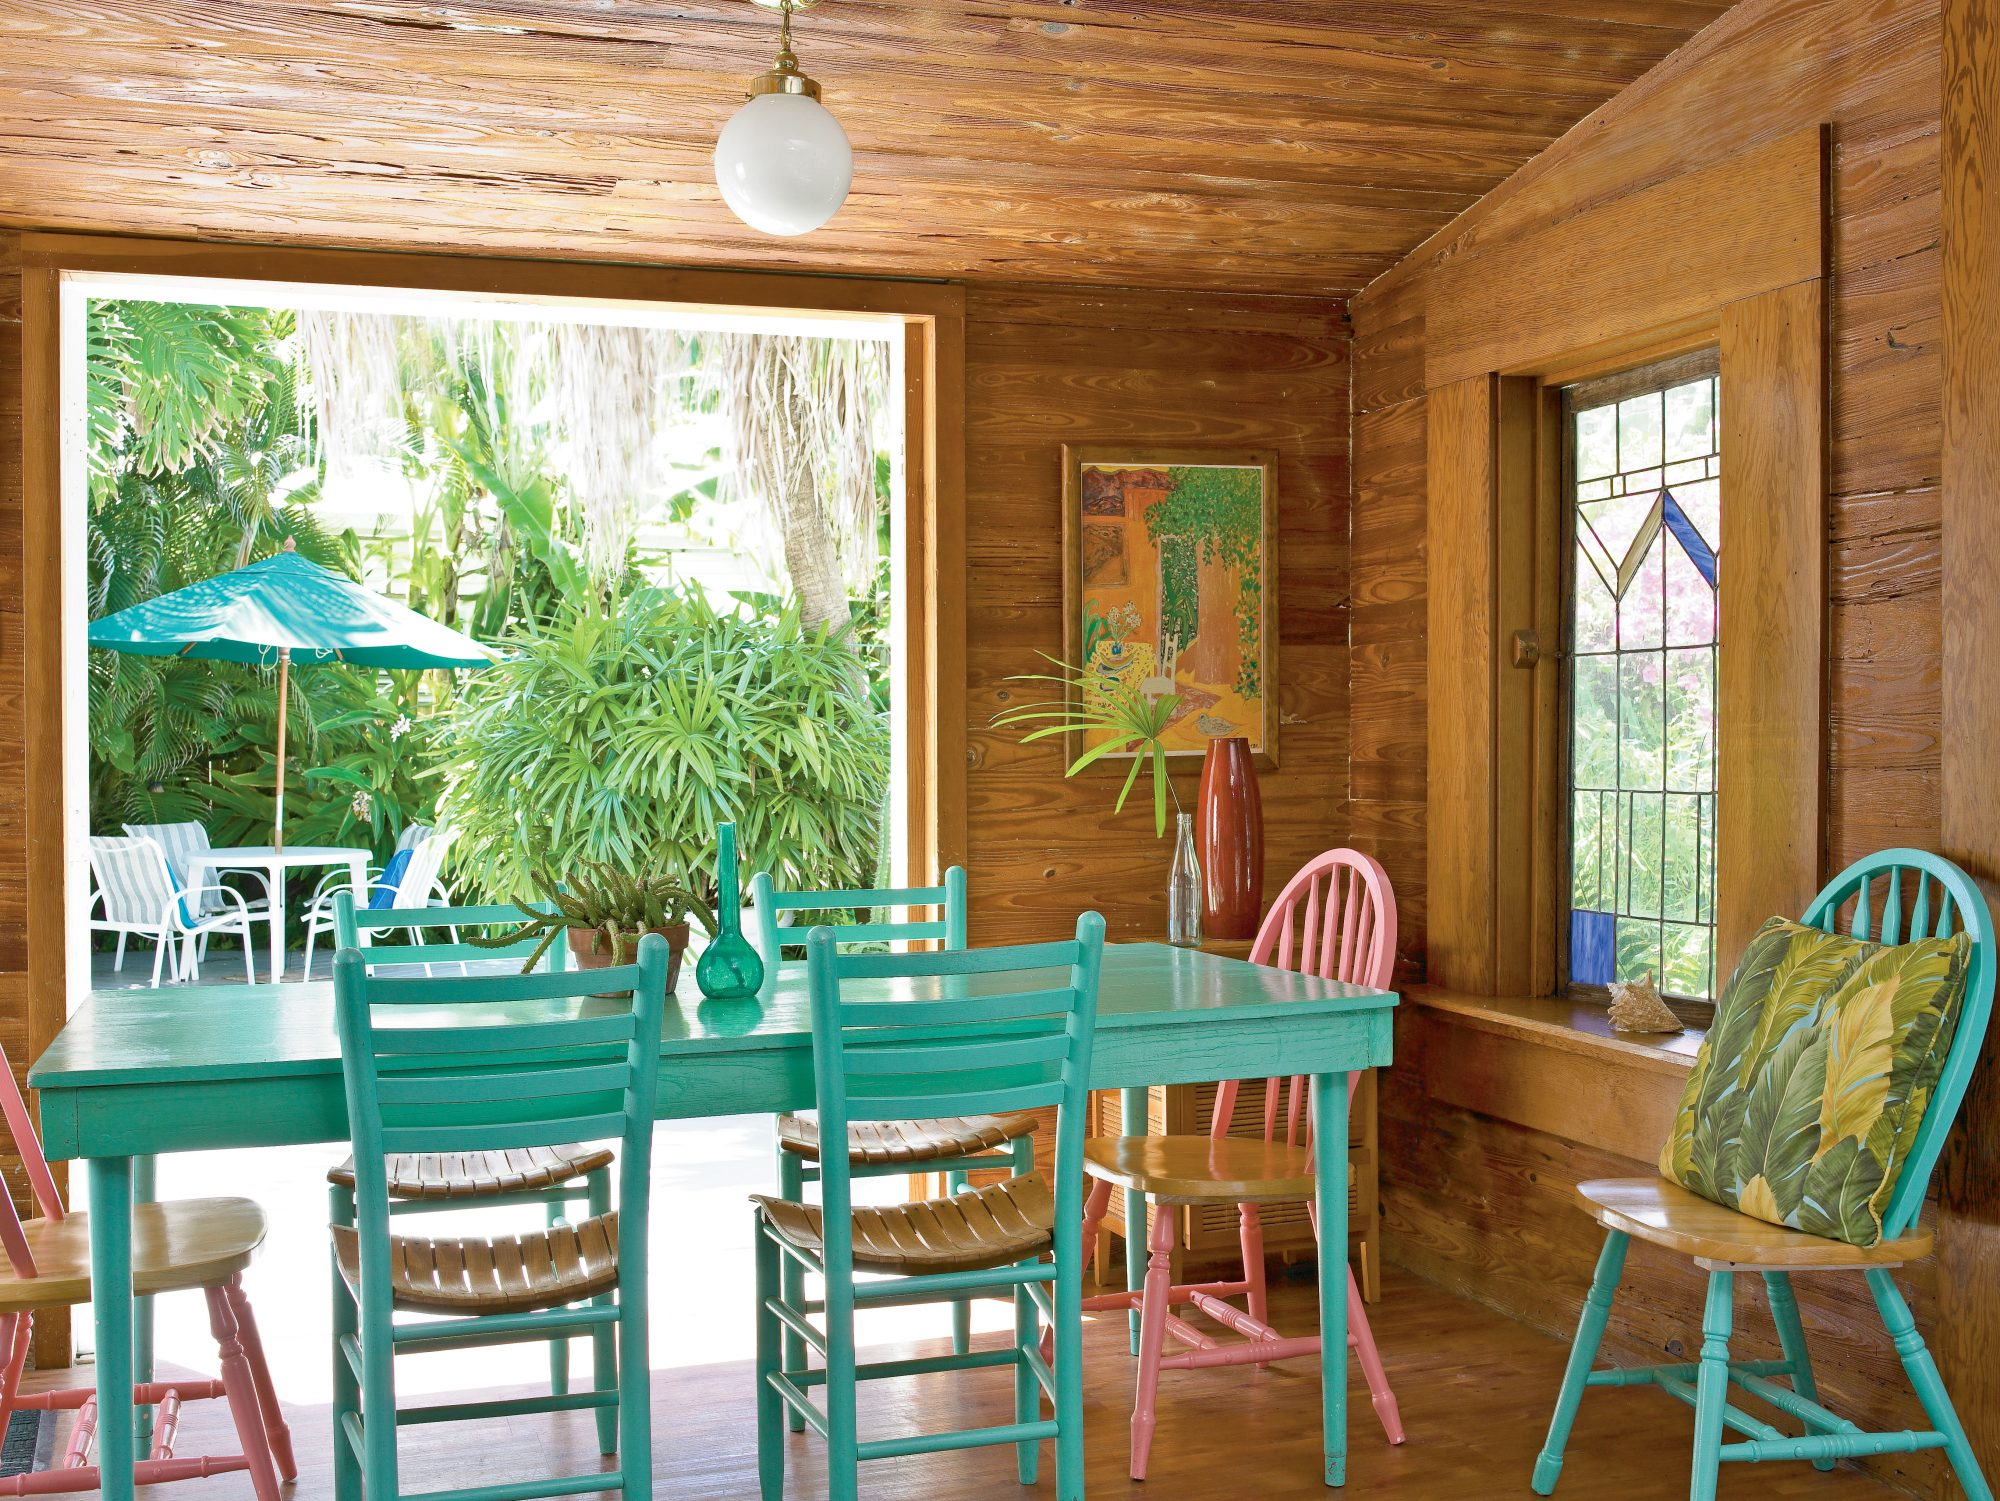 Bold print throw pillows and local artwork encourage the whimsical atmosphere, while French doors invite visitors onto the spacious deck and lush garden.